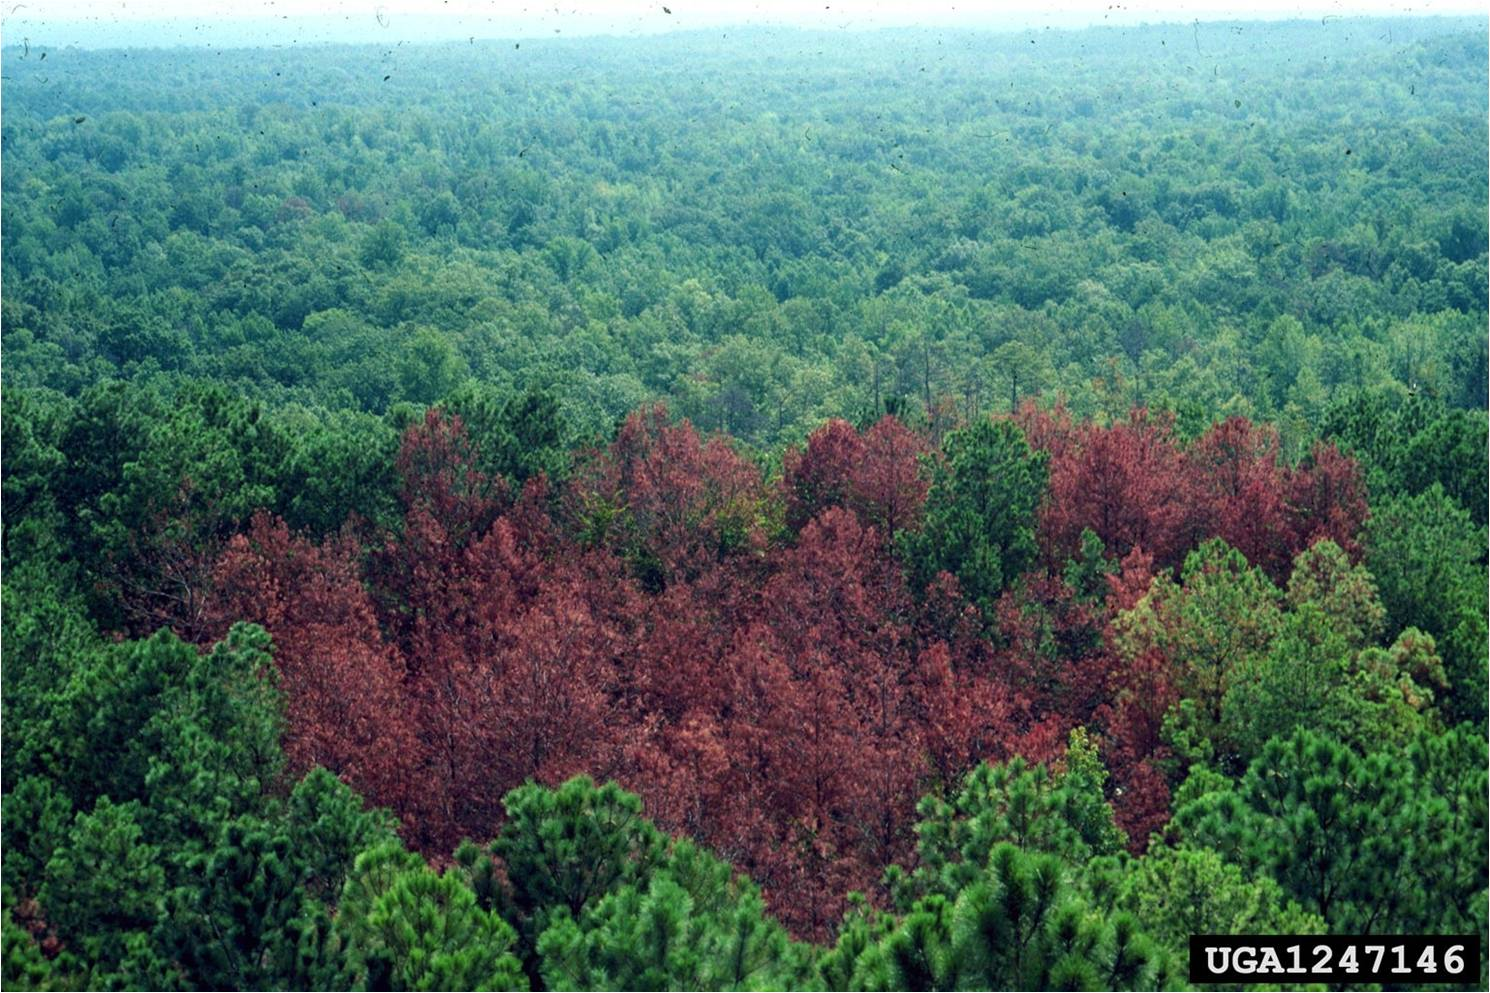 Photo of a dead area of pines from an aerial view